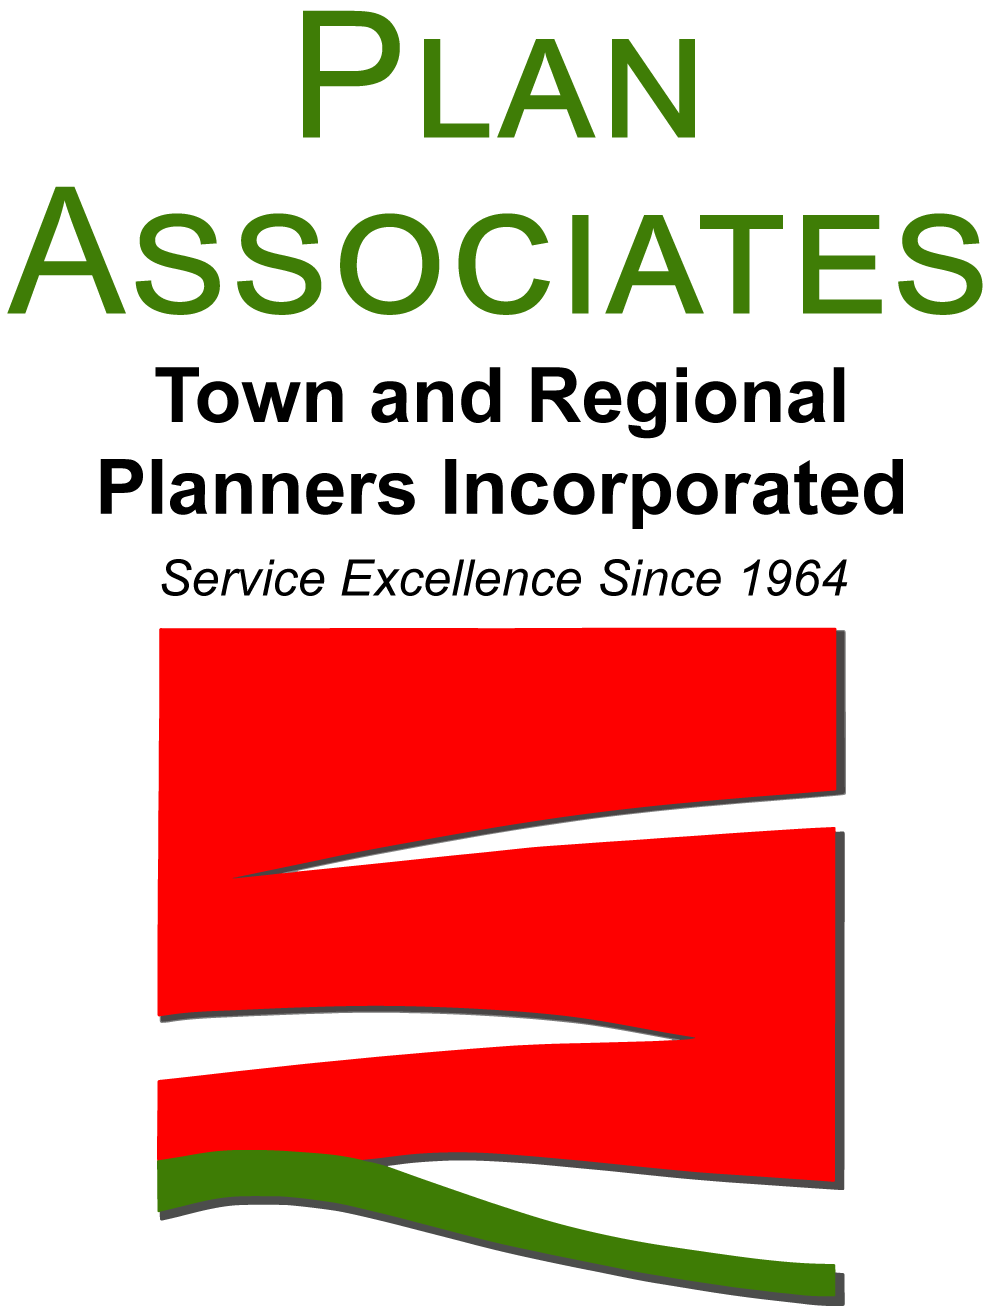 Plan-Associates-logo-banners-(1000x1311)